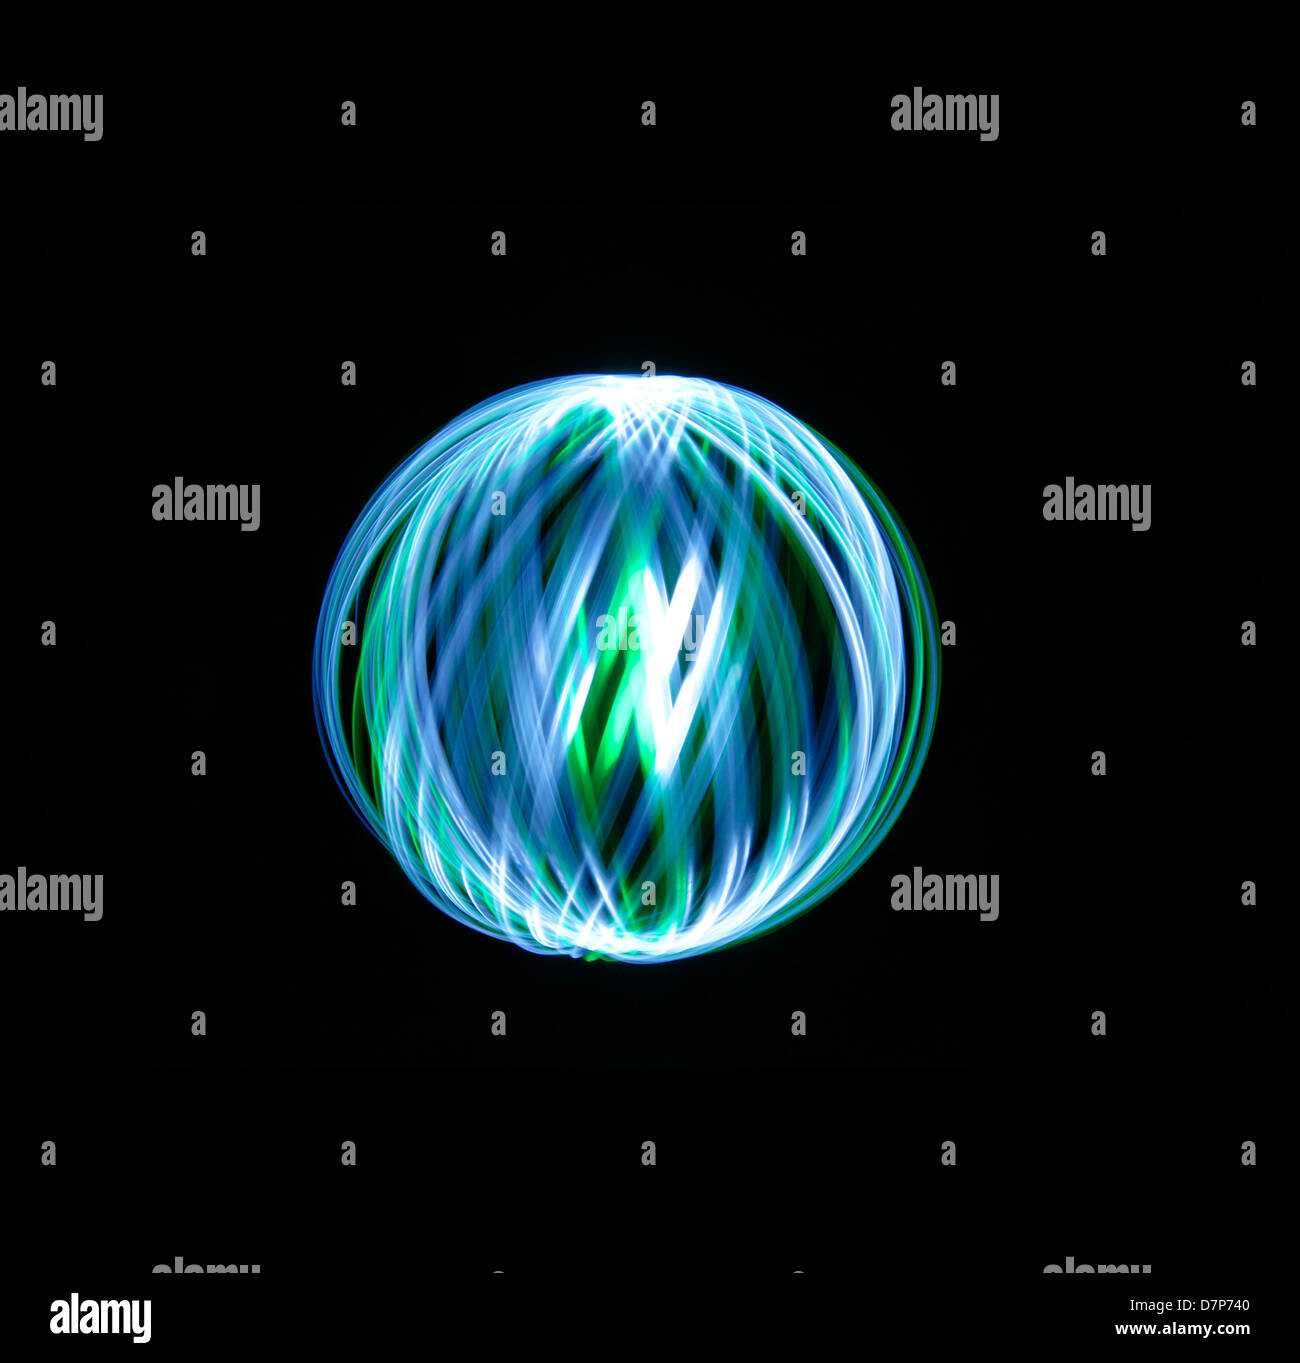 Light Painting Orbs and Spheres - Stock Image